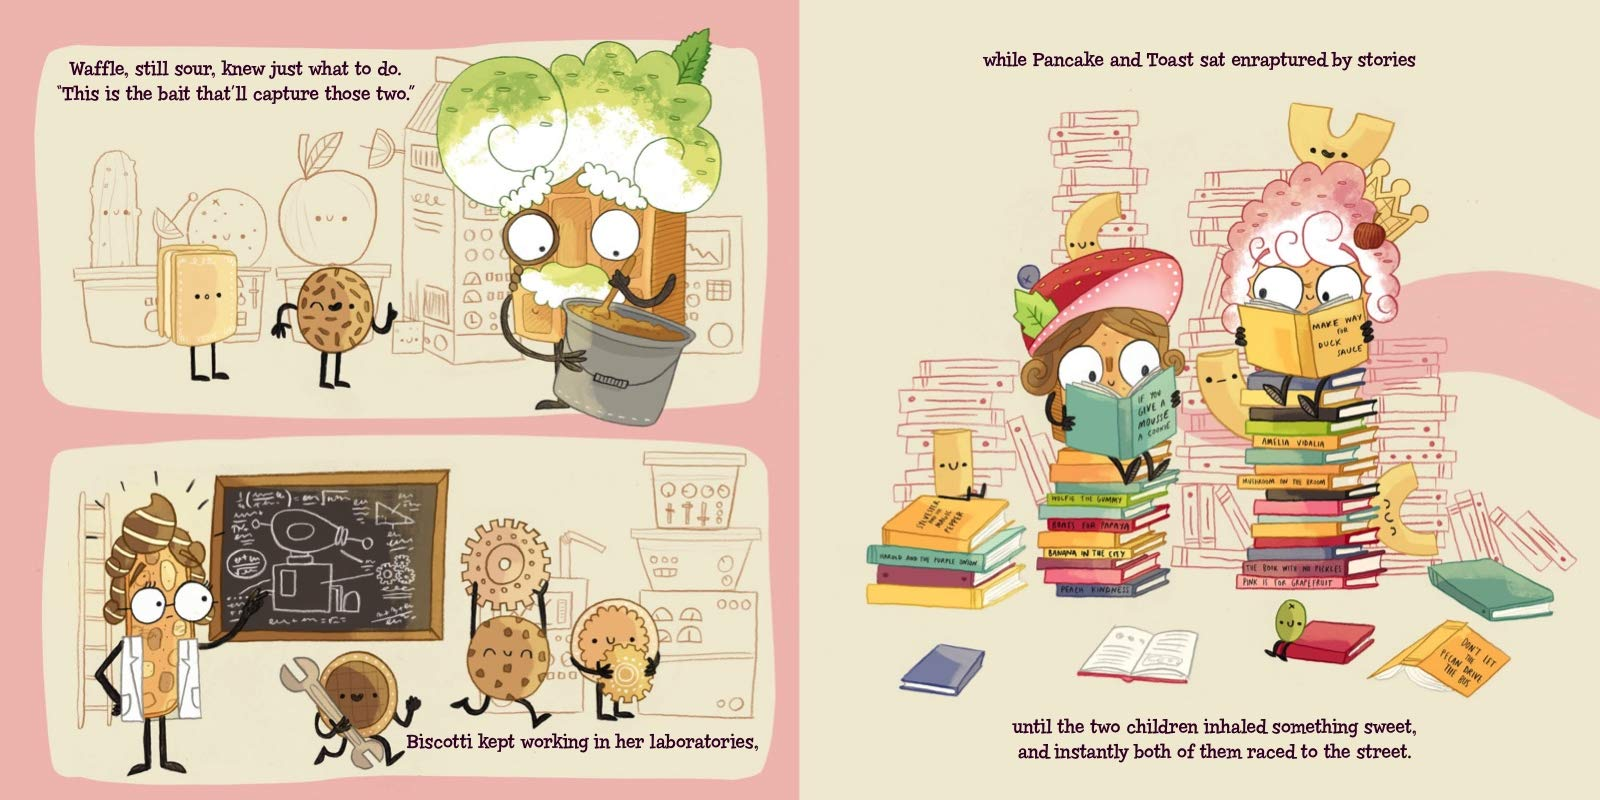 celebrate-picture-books-picture-book-review-short-&-sweet-waffle